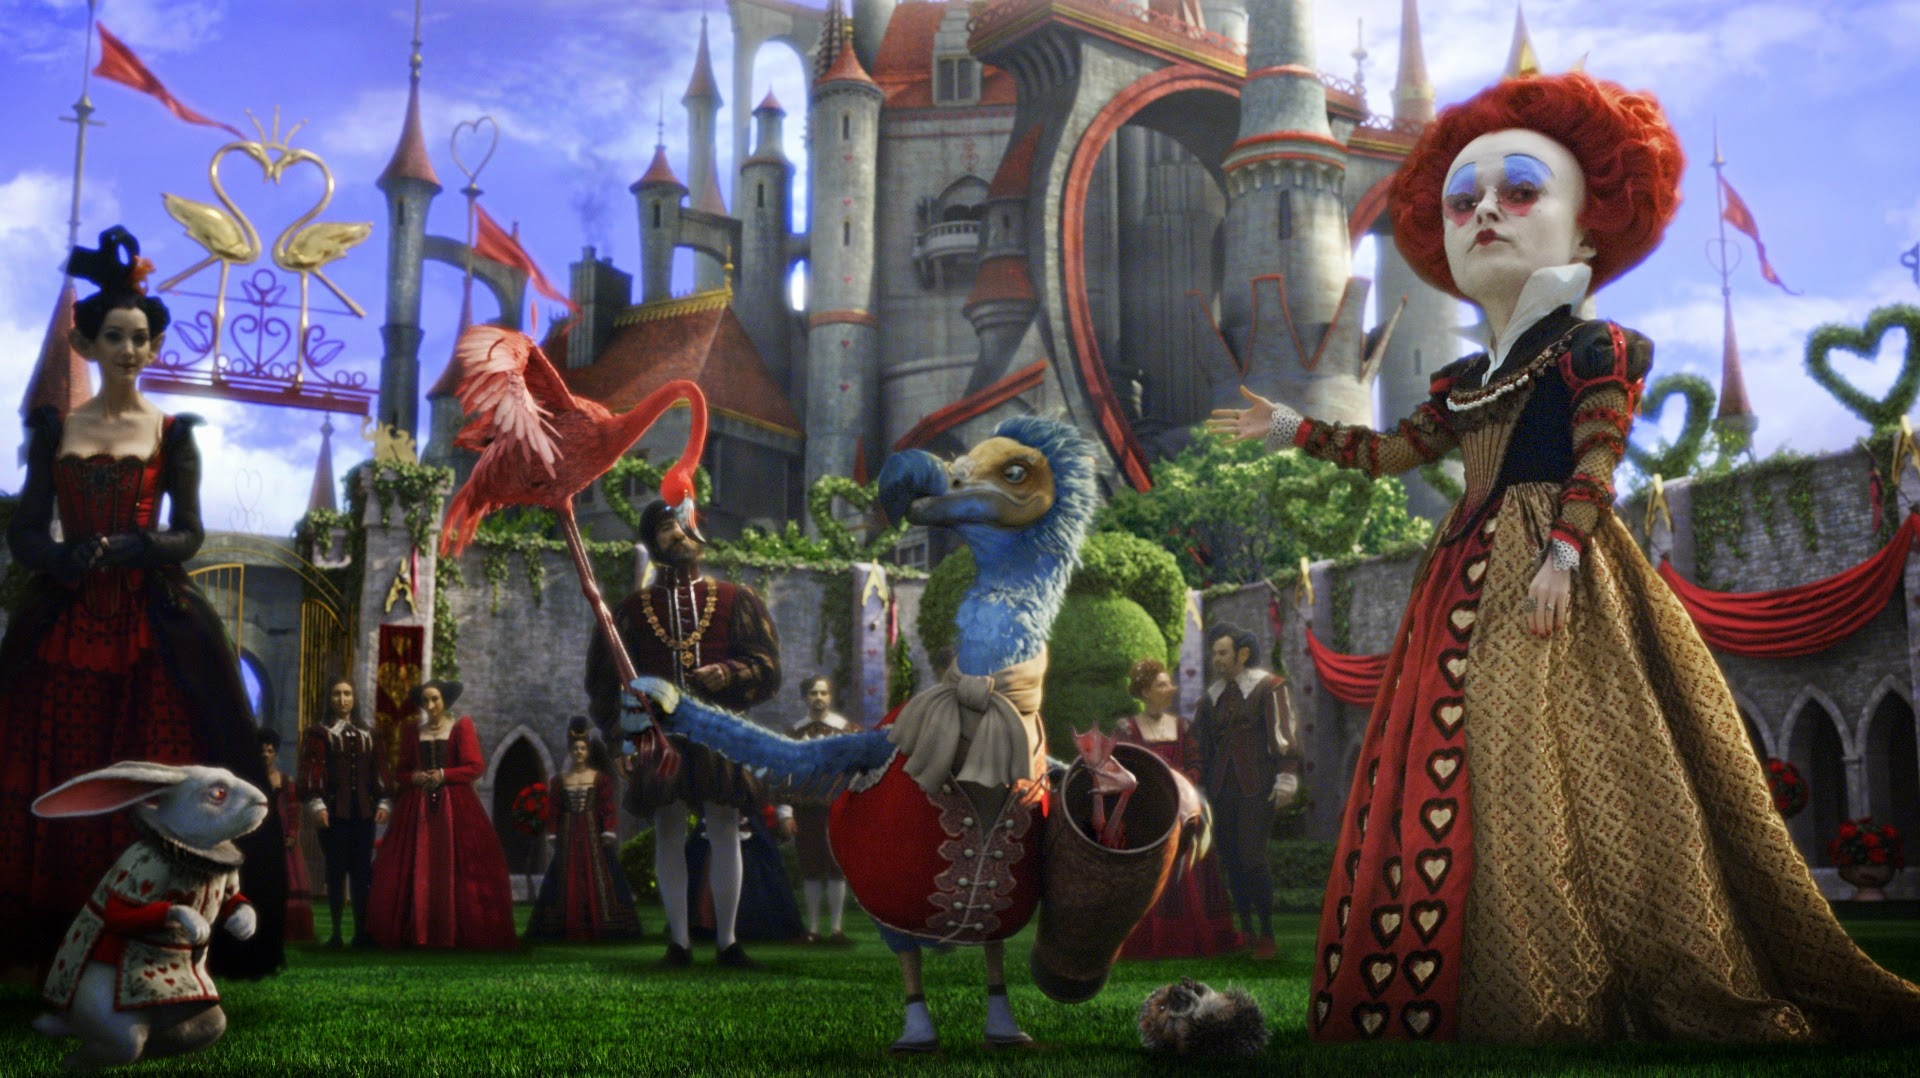 alice-in-wonderland-movie-image-9